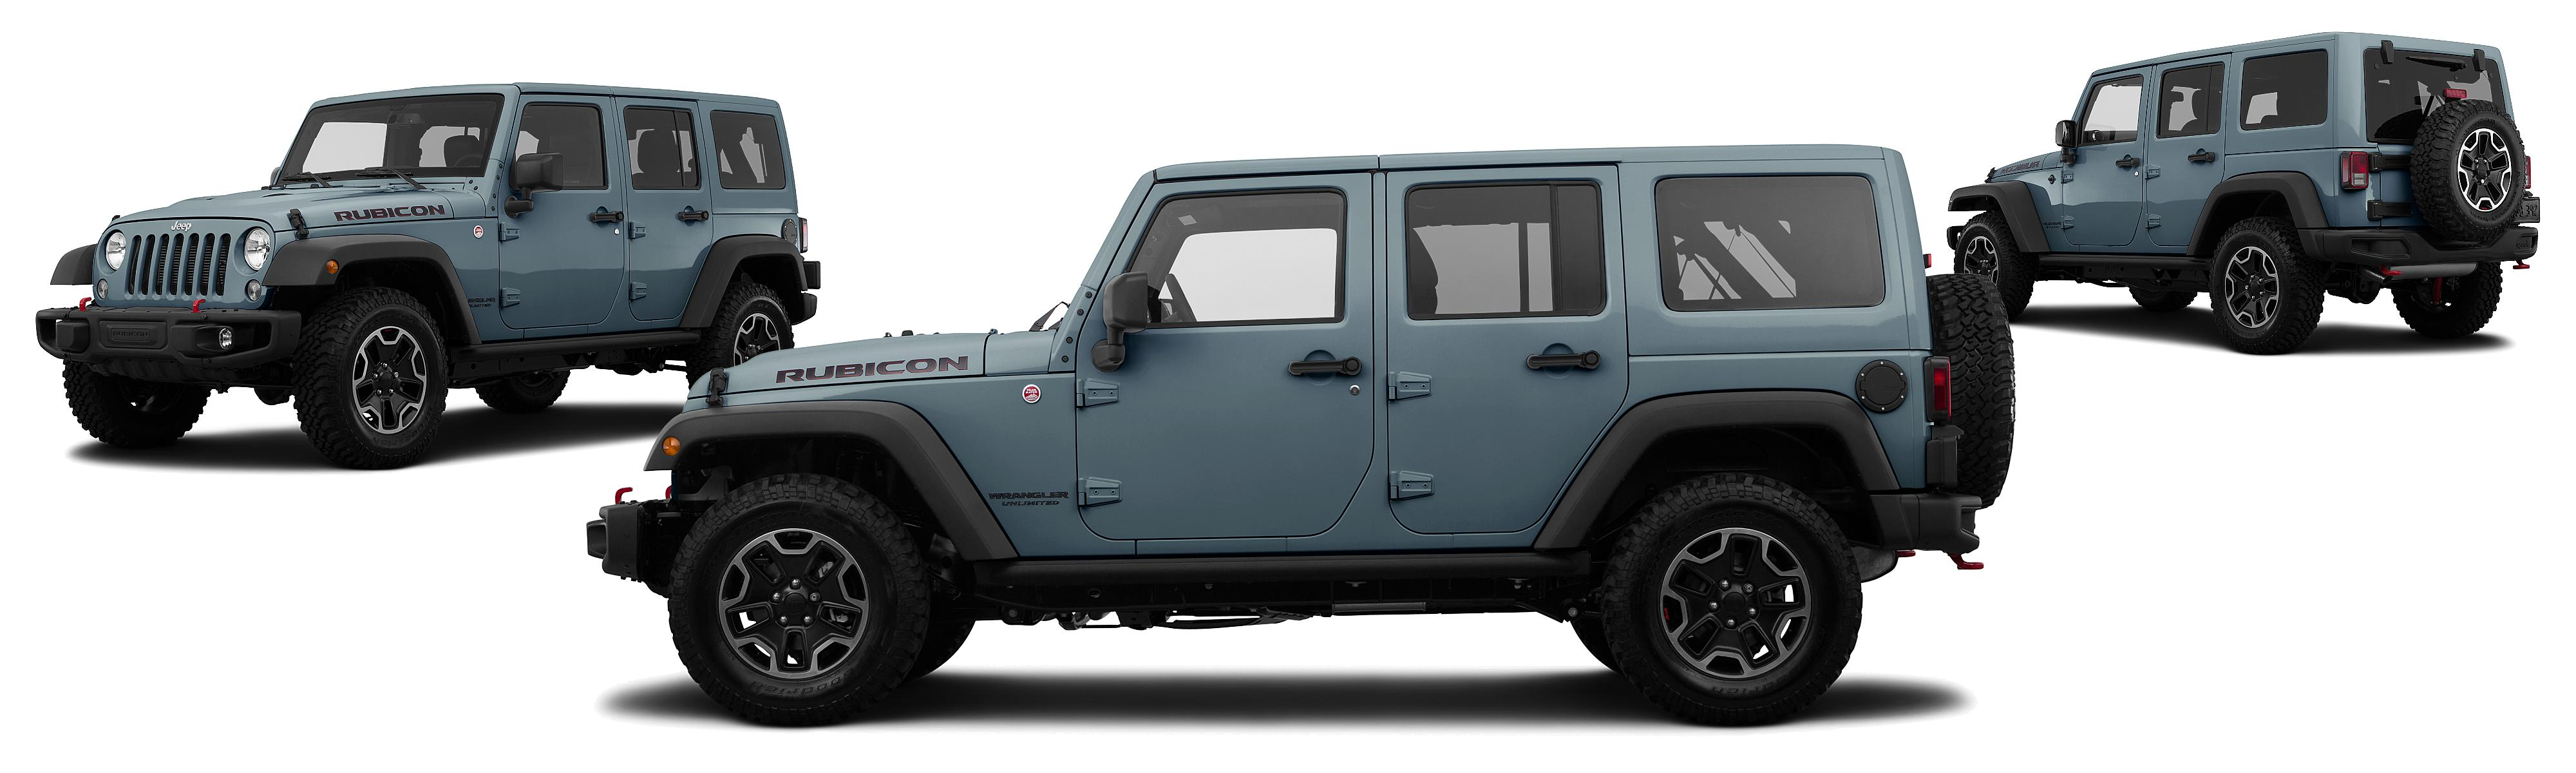 jeep unlimited media wrangler dsc rubicon portfolio motors w whardtop hardtop